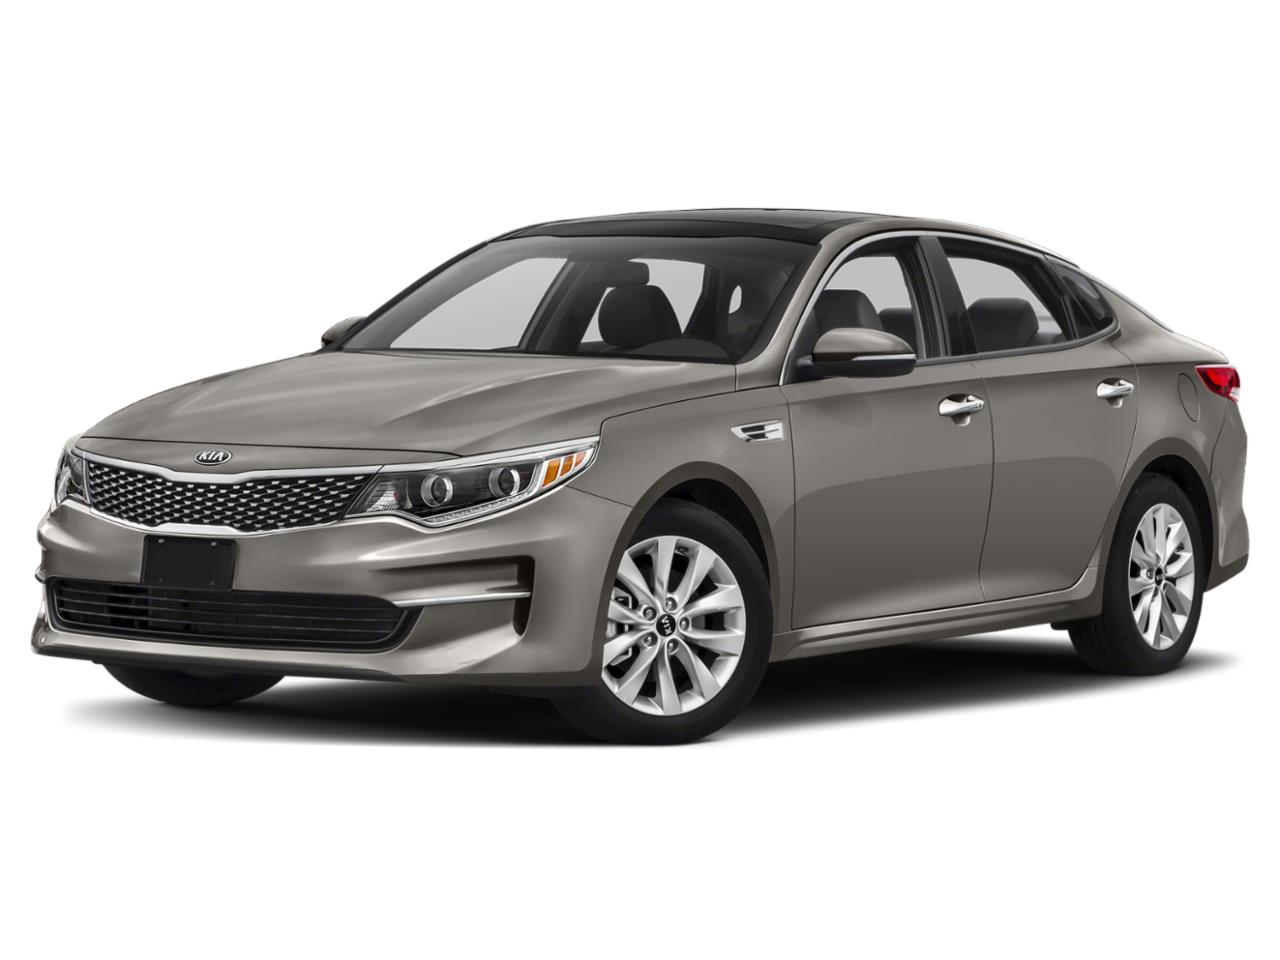 2018 Kia Optima Vehicle Photo in Spokane, WA 99207